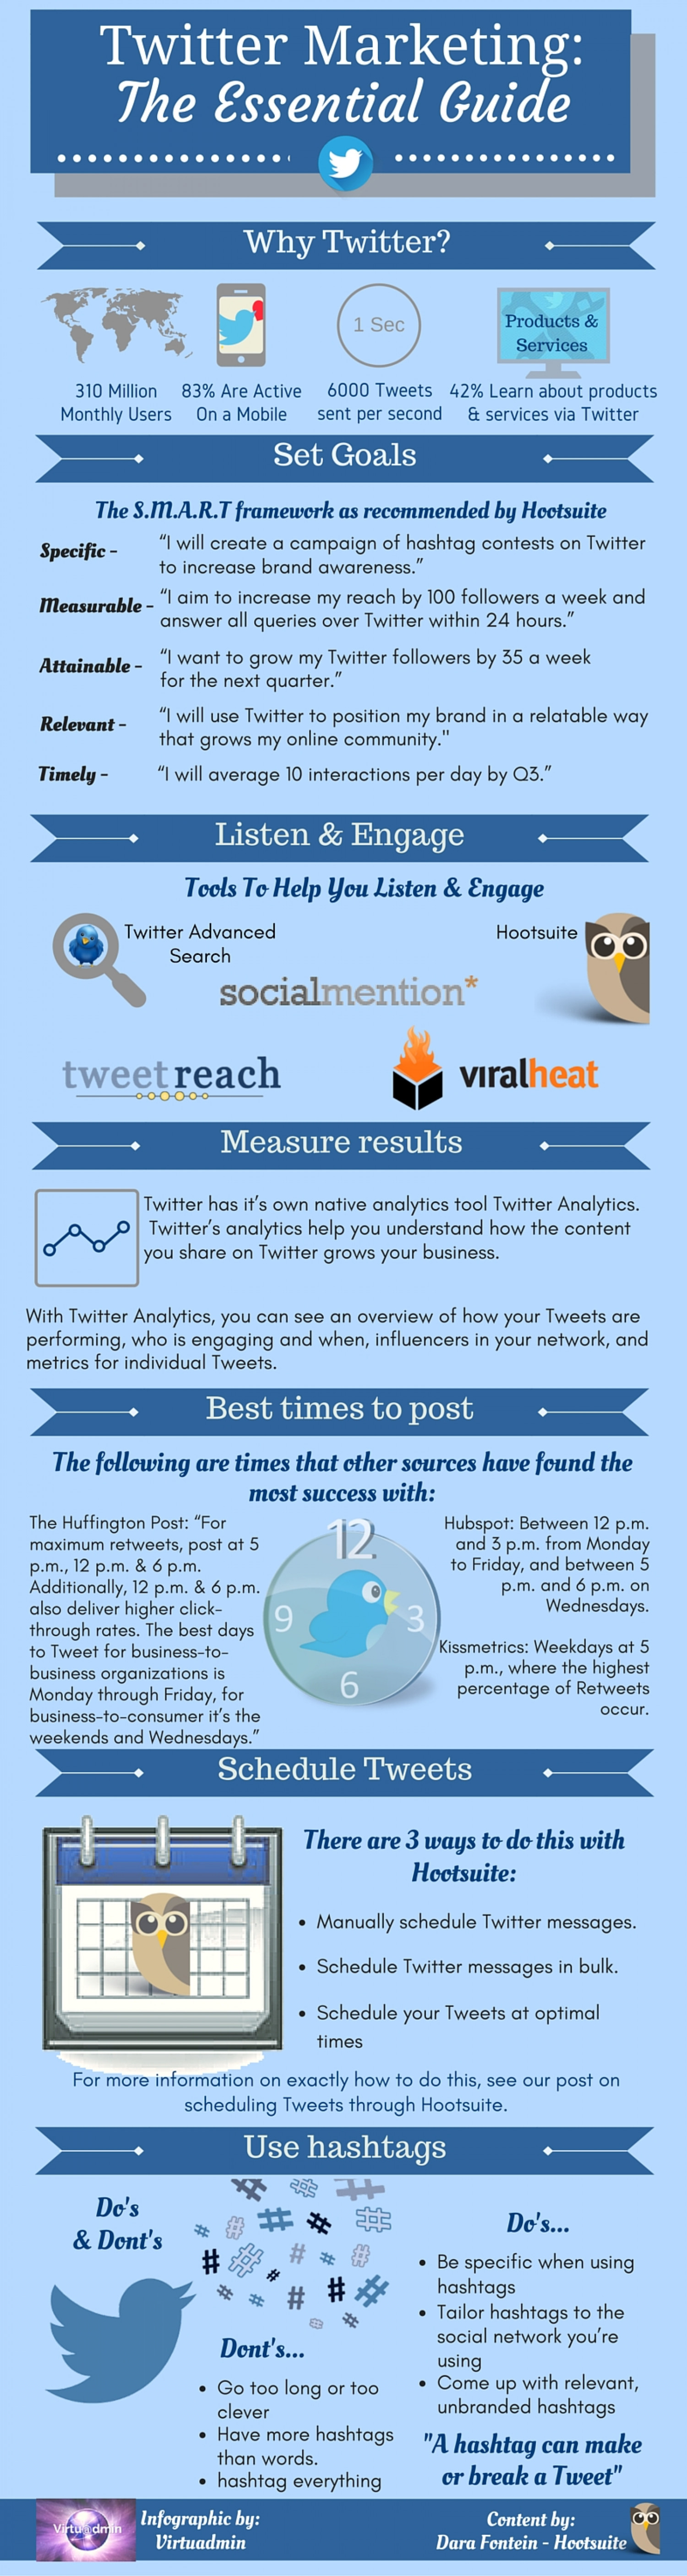 Twitter Marketing - The Essential Guide Infographic